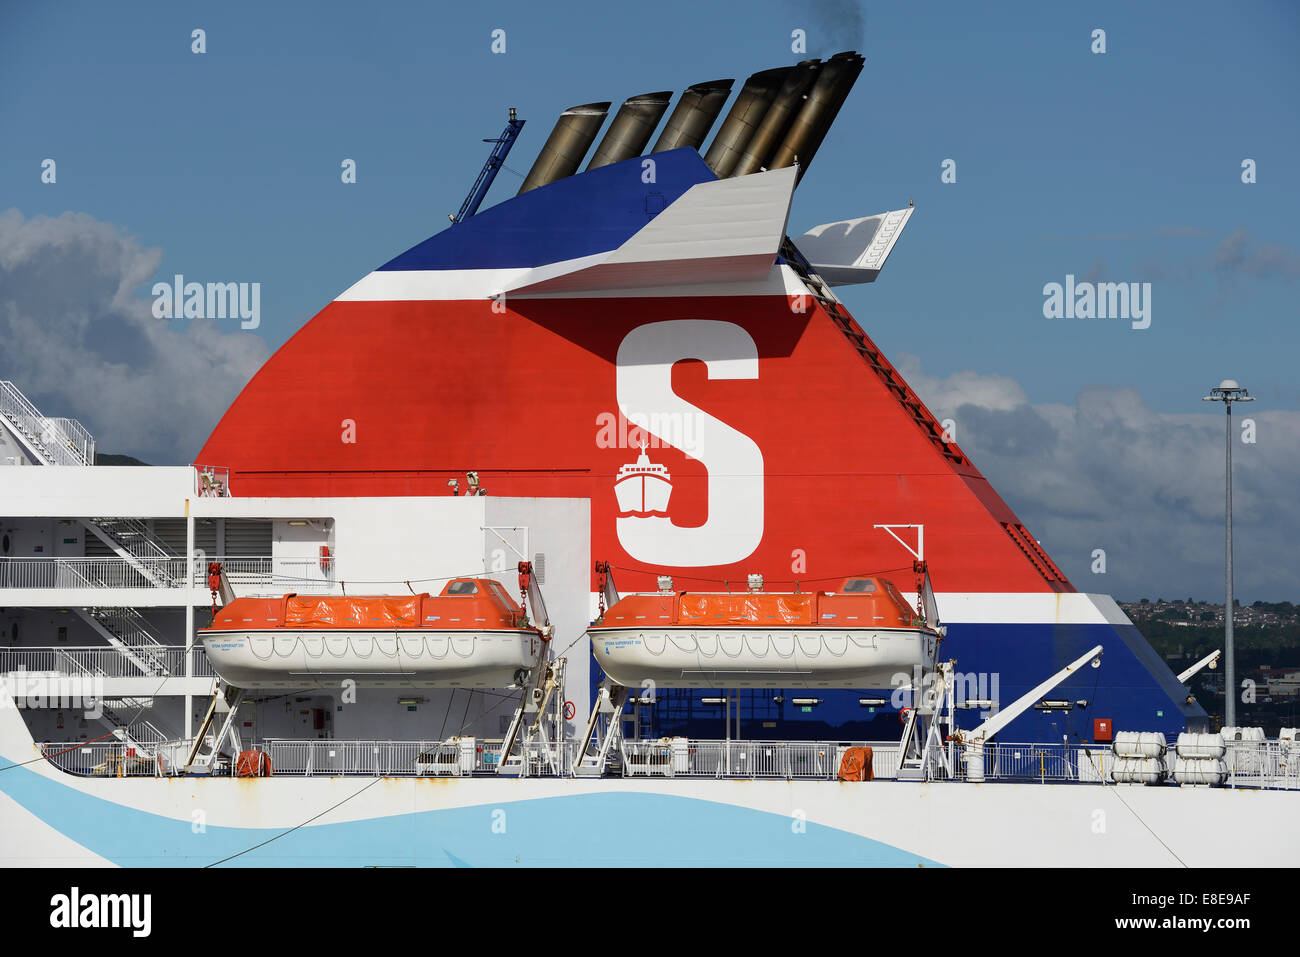 Stena Line S logo on the funnel of a ferry - Stock Image